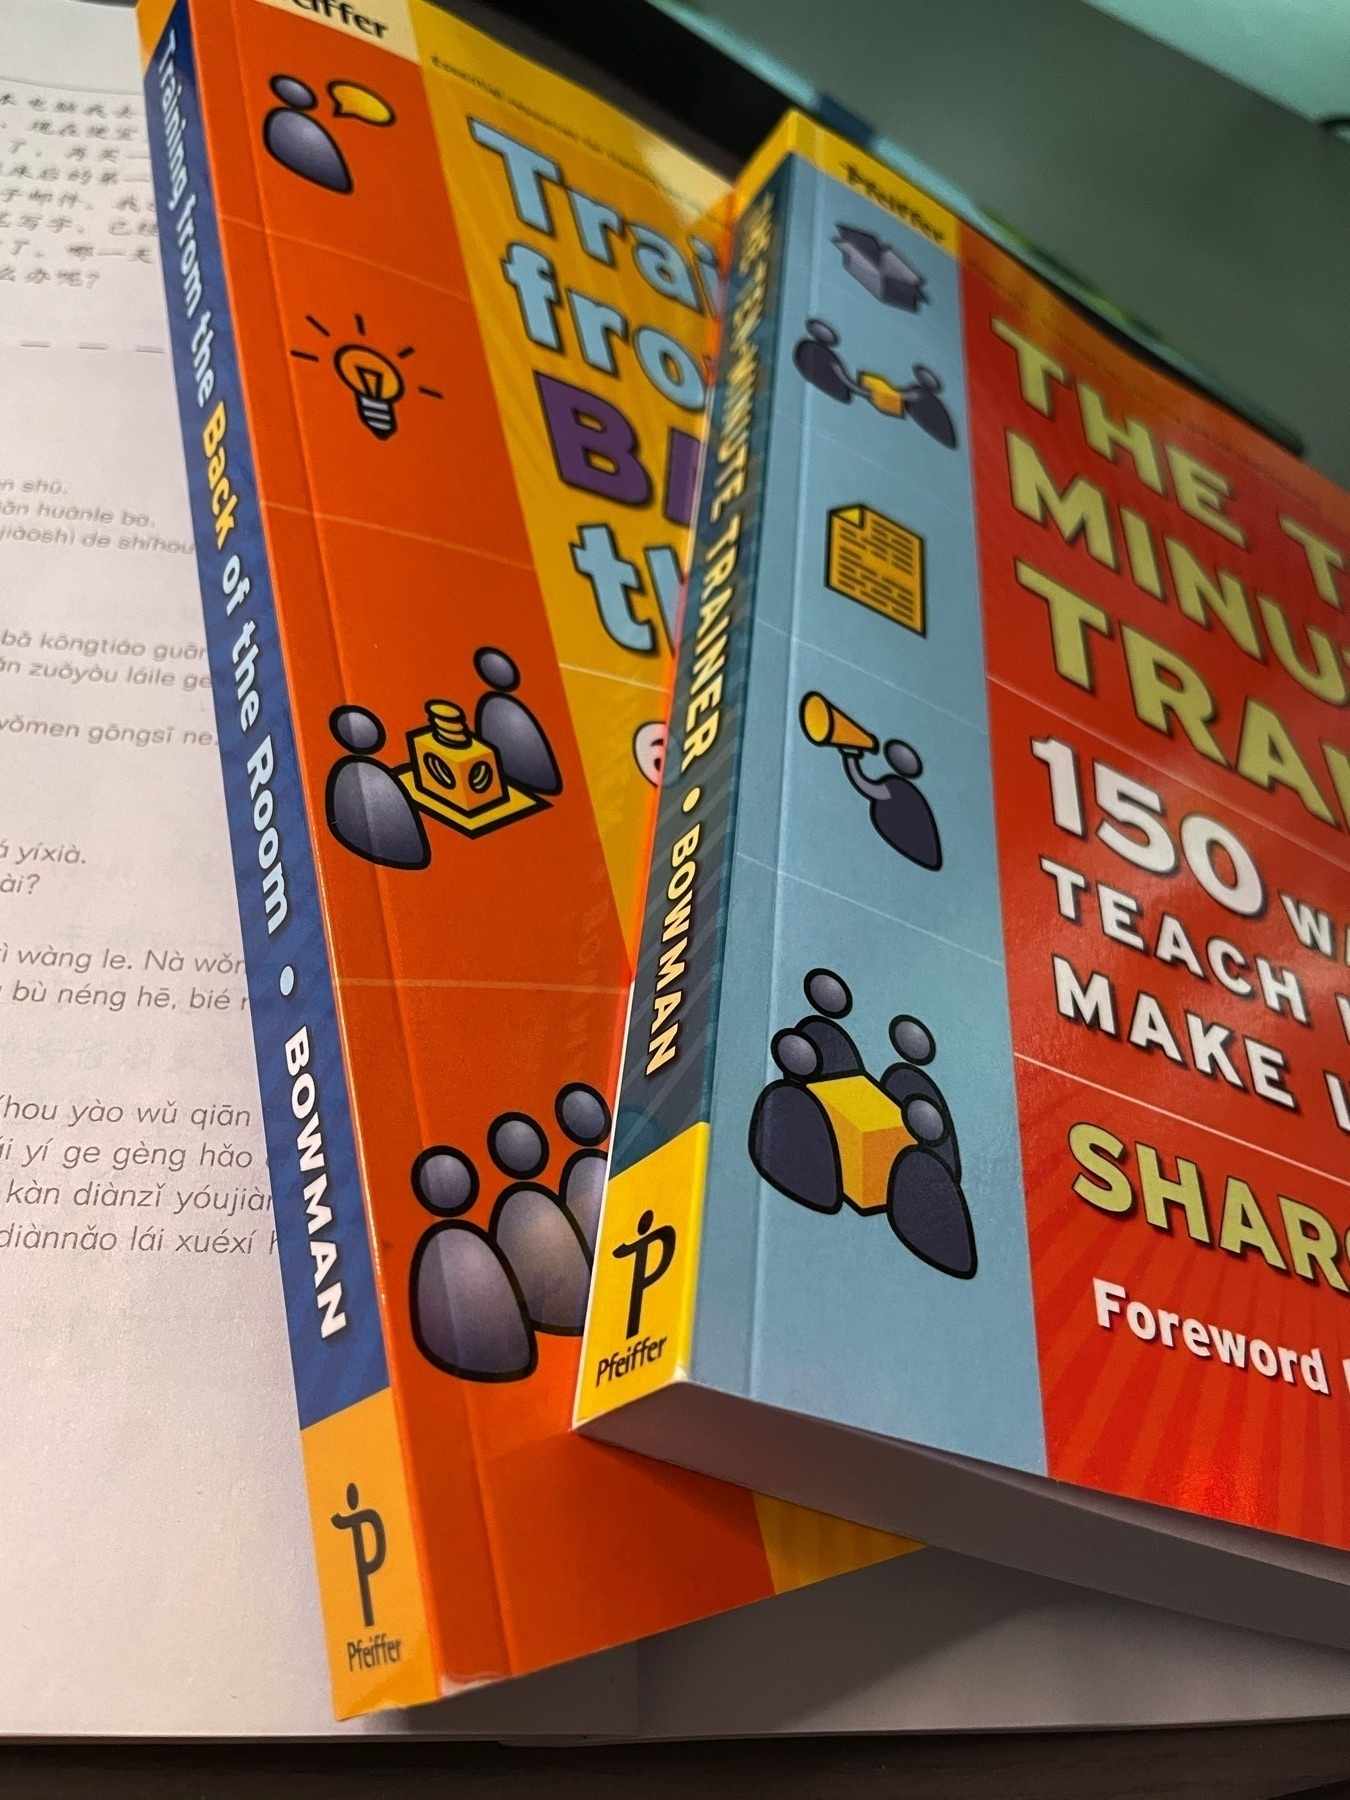 Books: Ten minute trainer and Teaching from the Back of the Room on top of each other